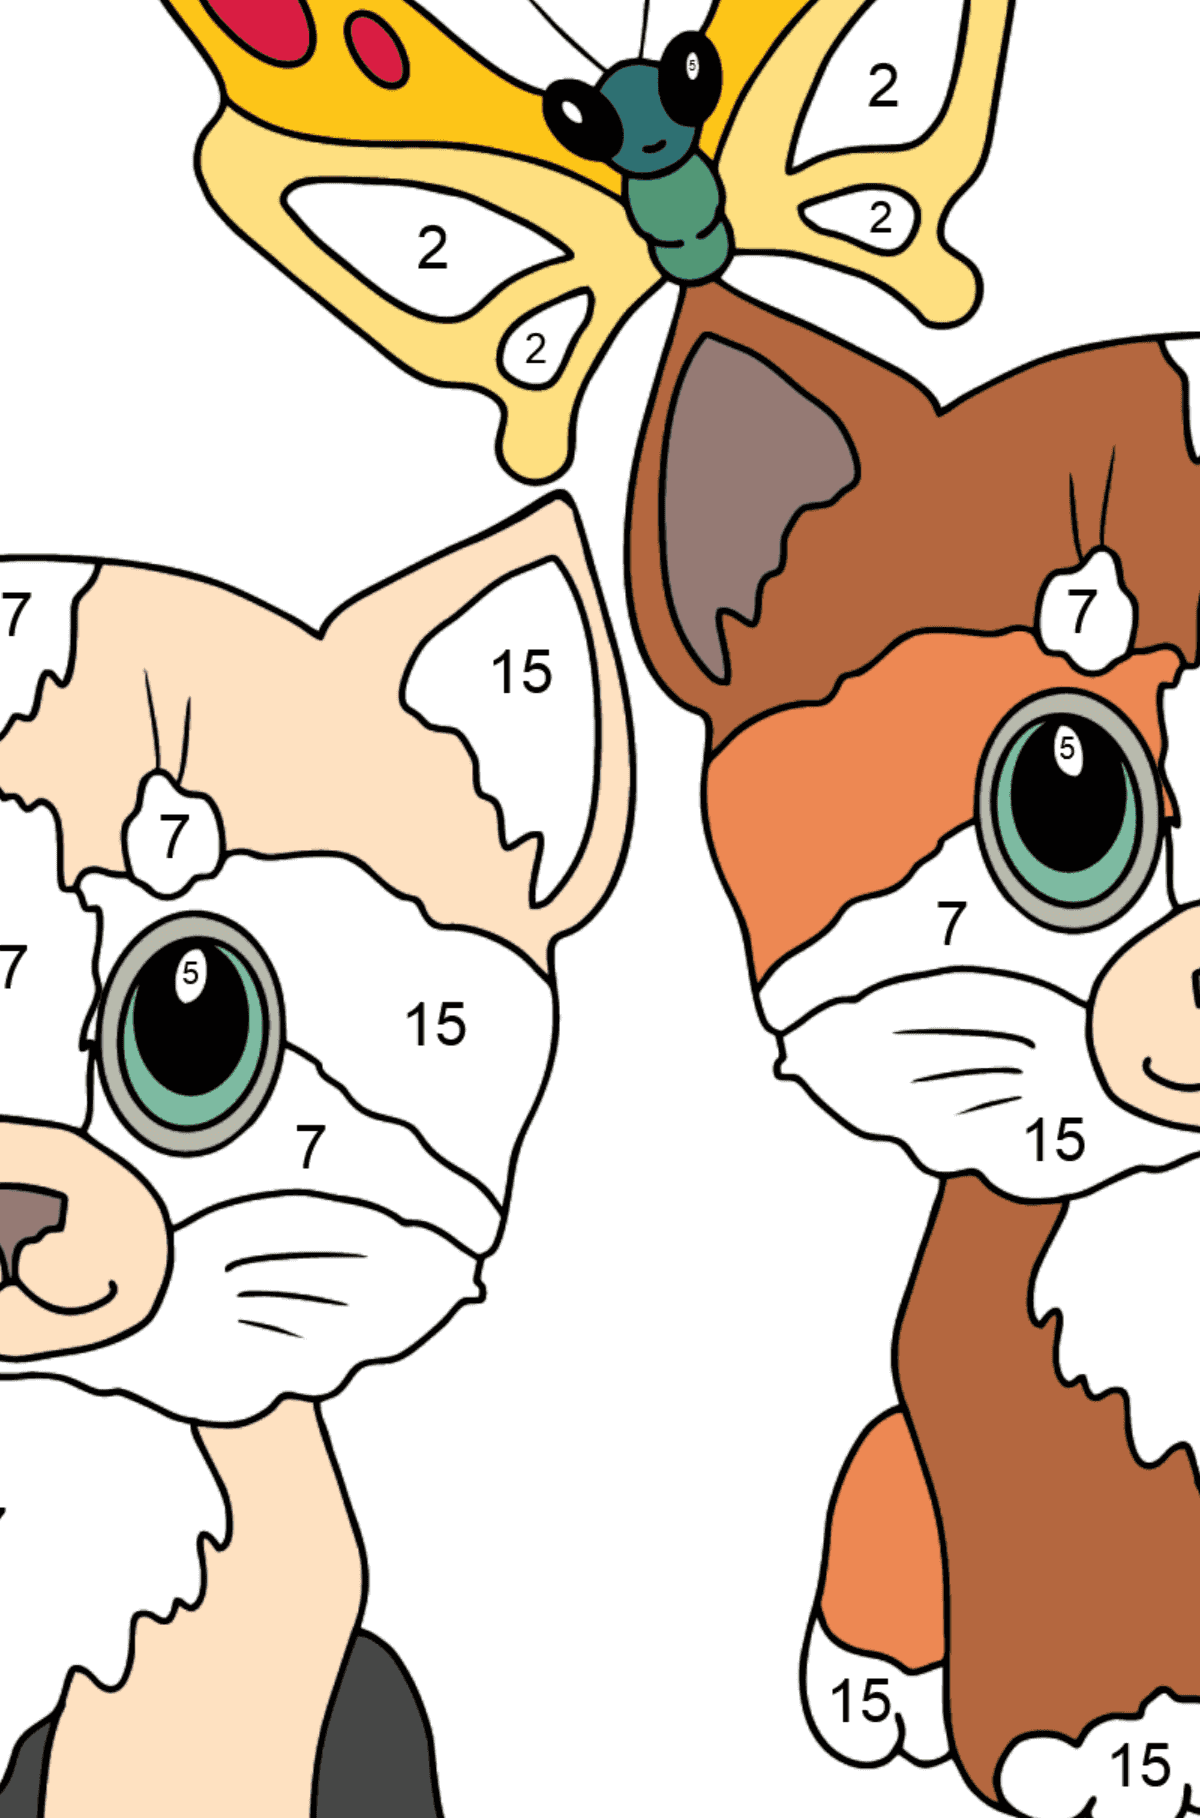 Coloring Page - Kittens are Playing Happily with a Butterfly  - Coloring by Numbers for Kids